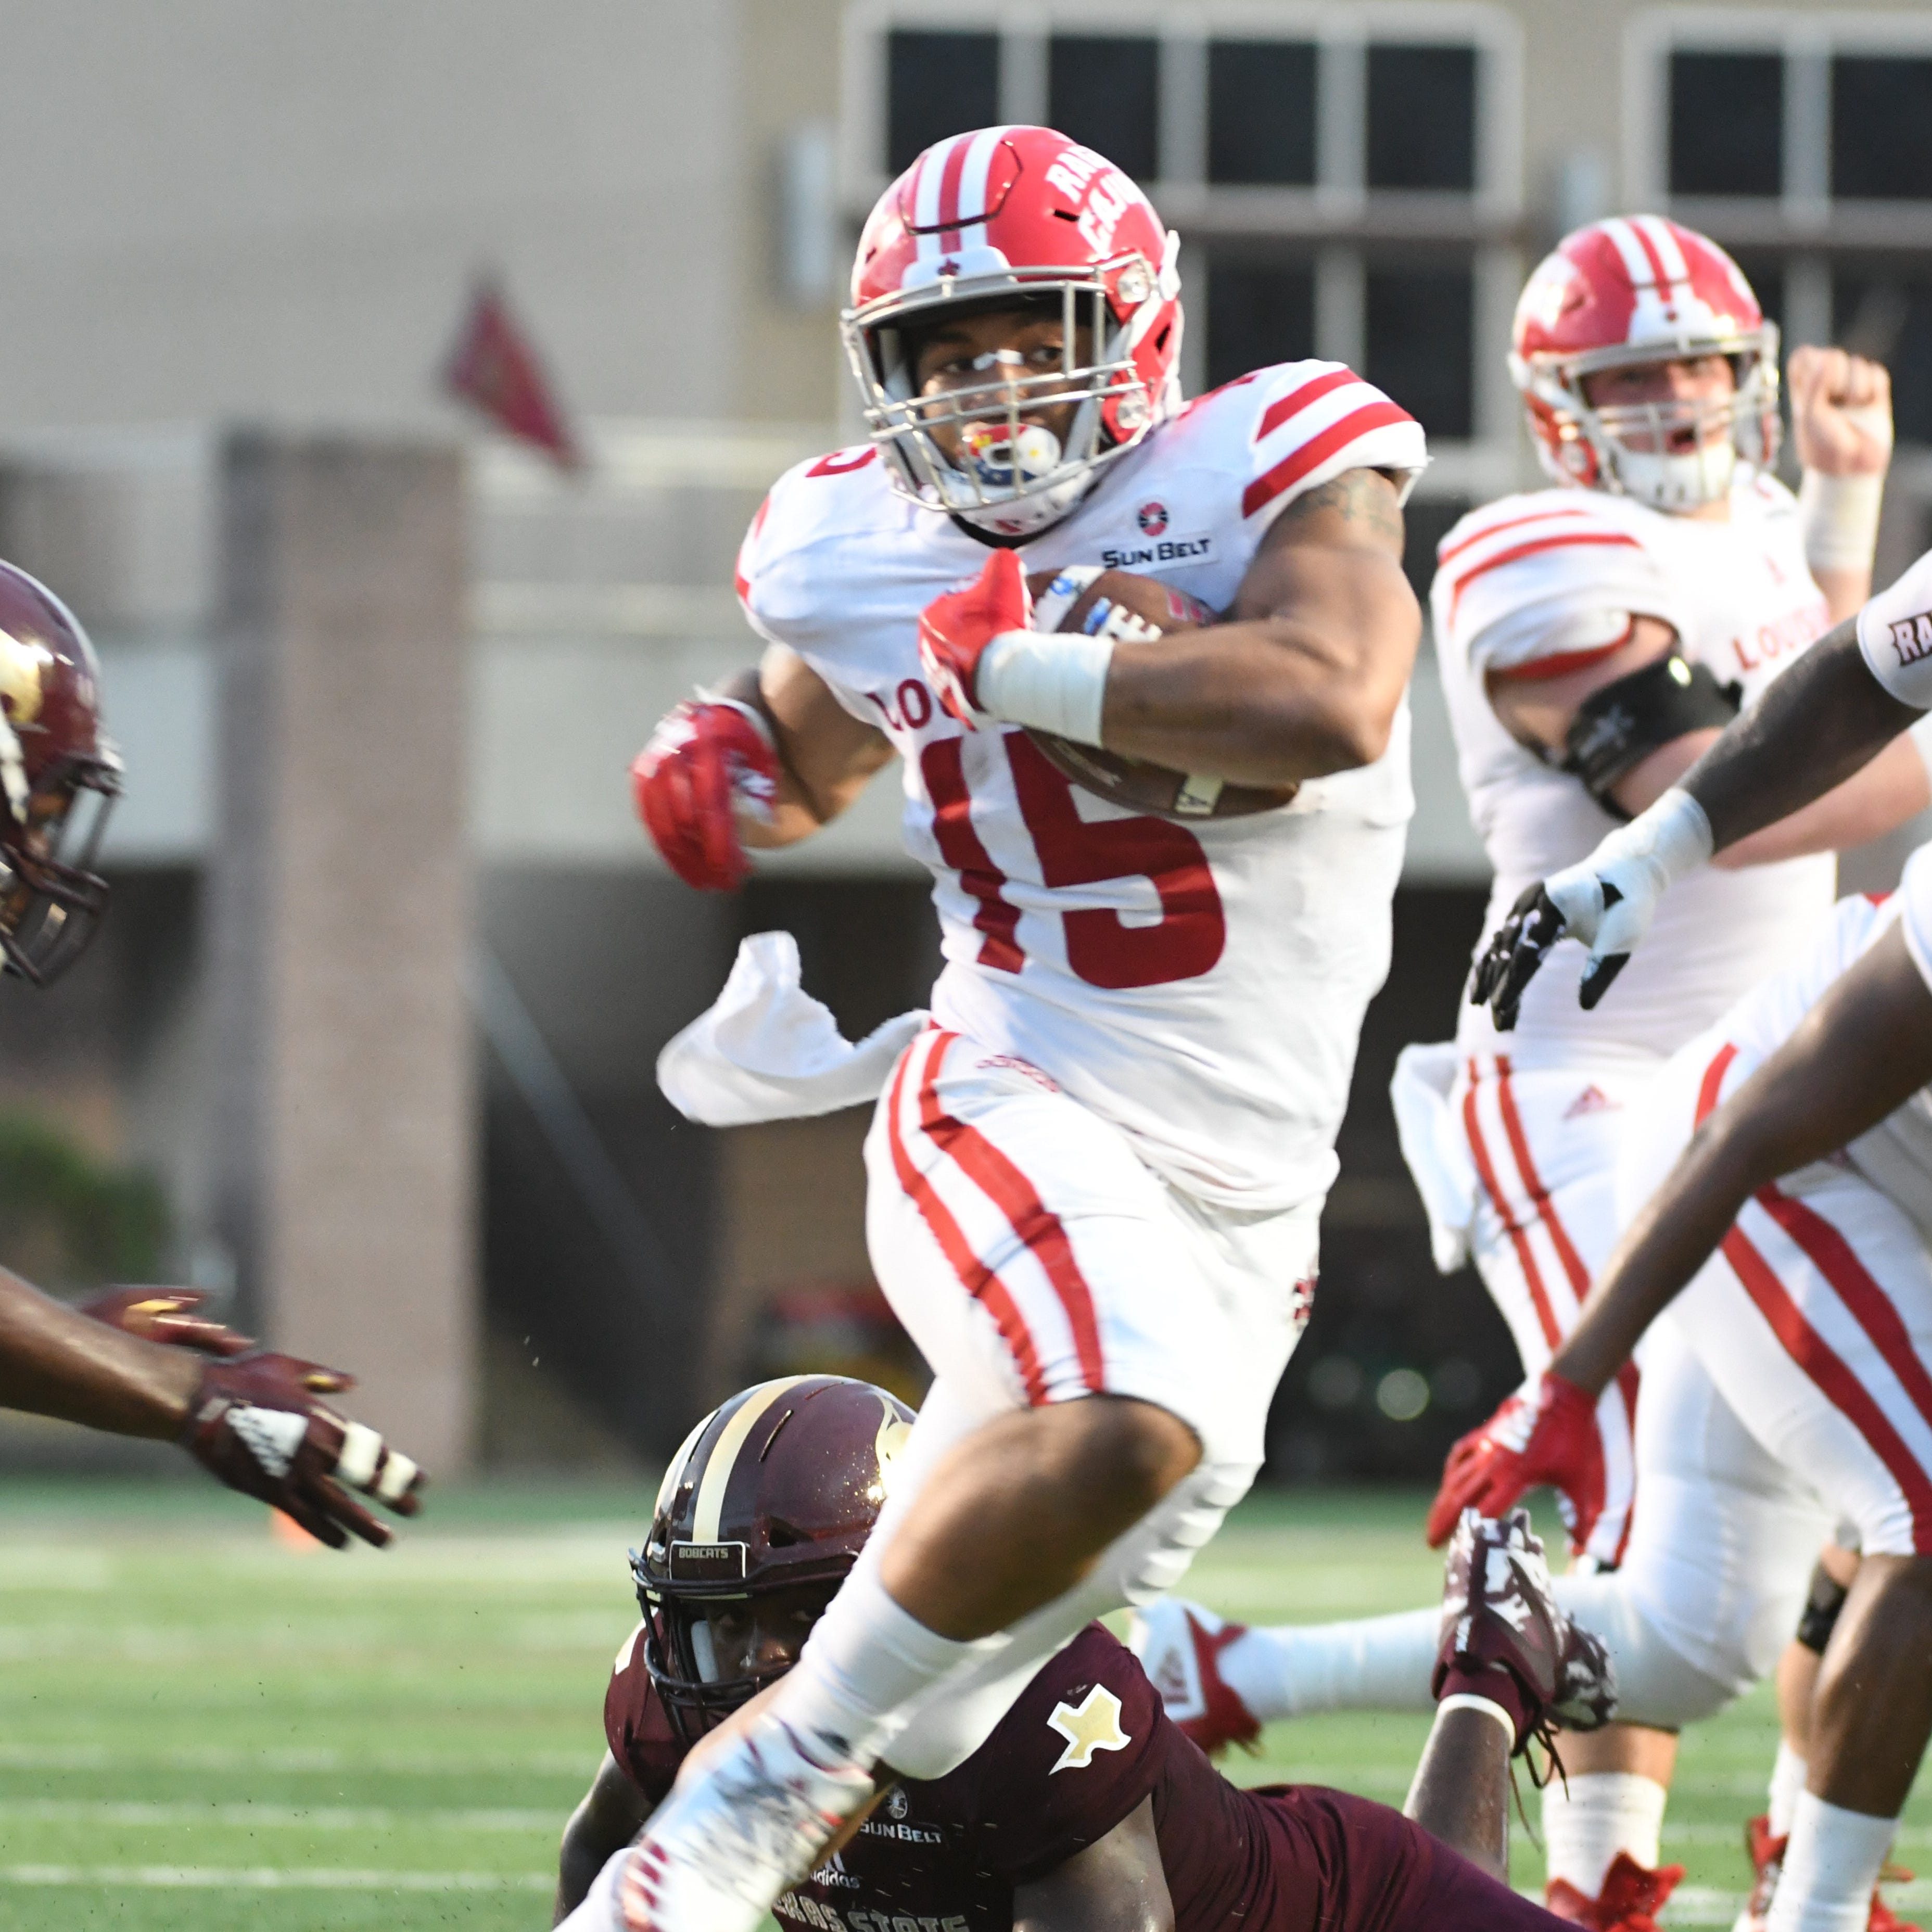 Napier: 'Three-headed monster' needs to allow Cajuns defense to catch its breath